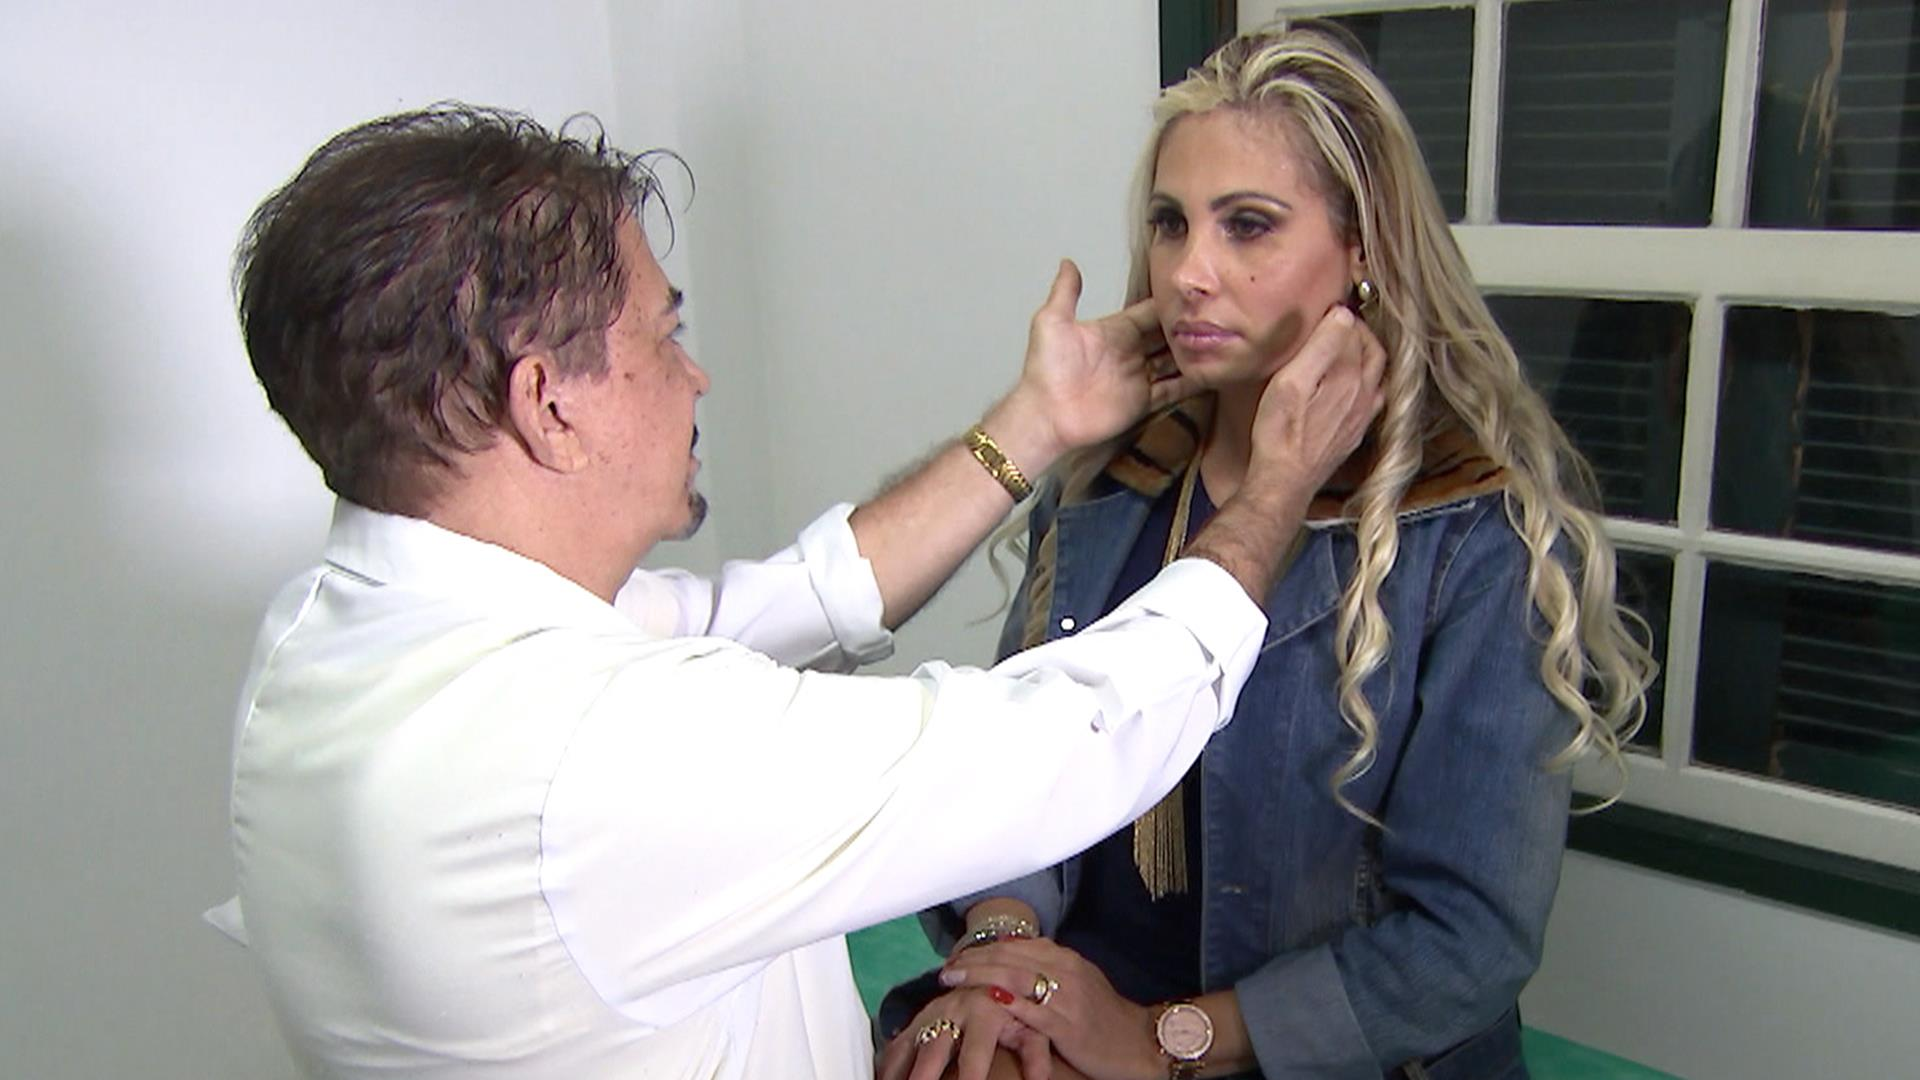 Why Is Brazil The Plastic Surgery Capital Of The World